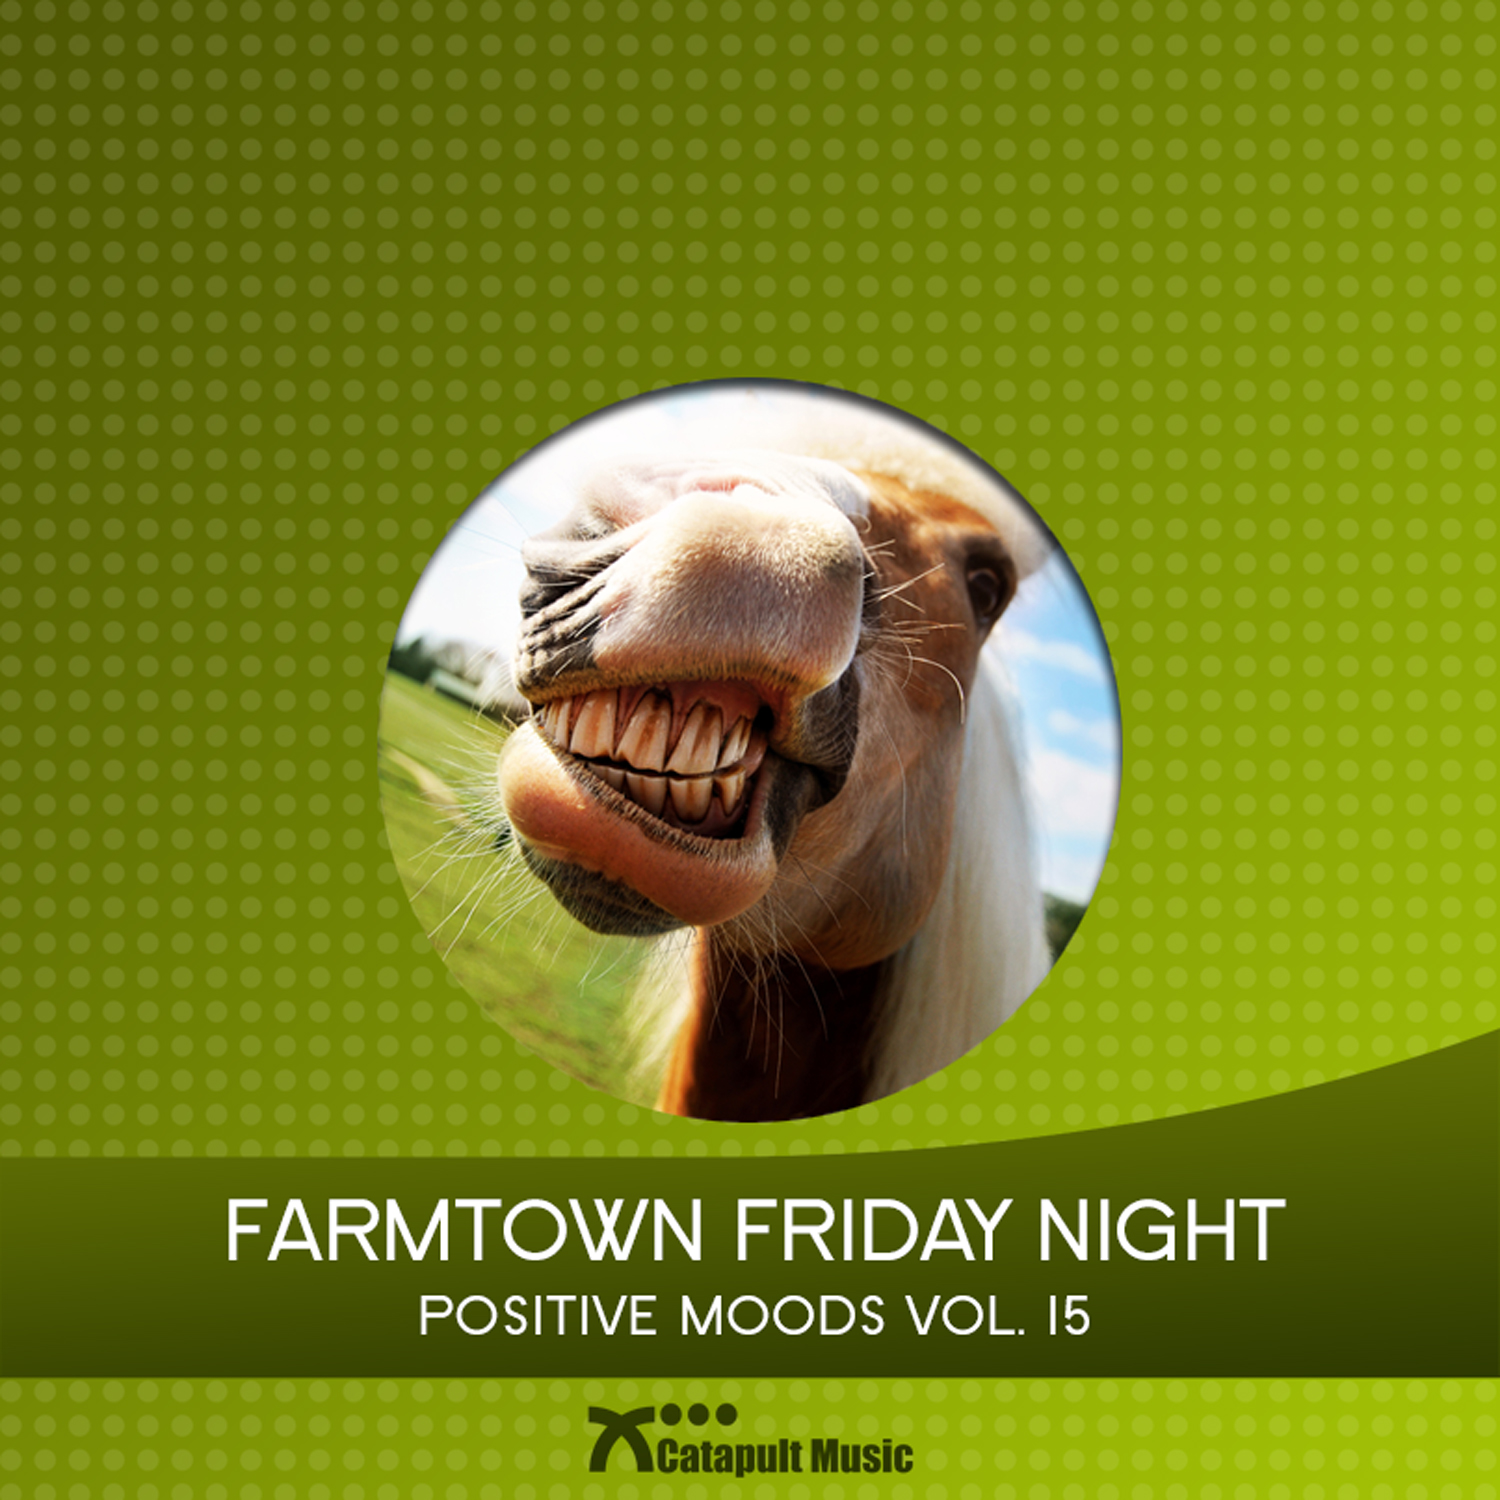 Farmtown Friday Night